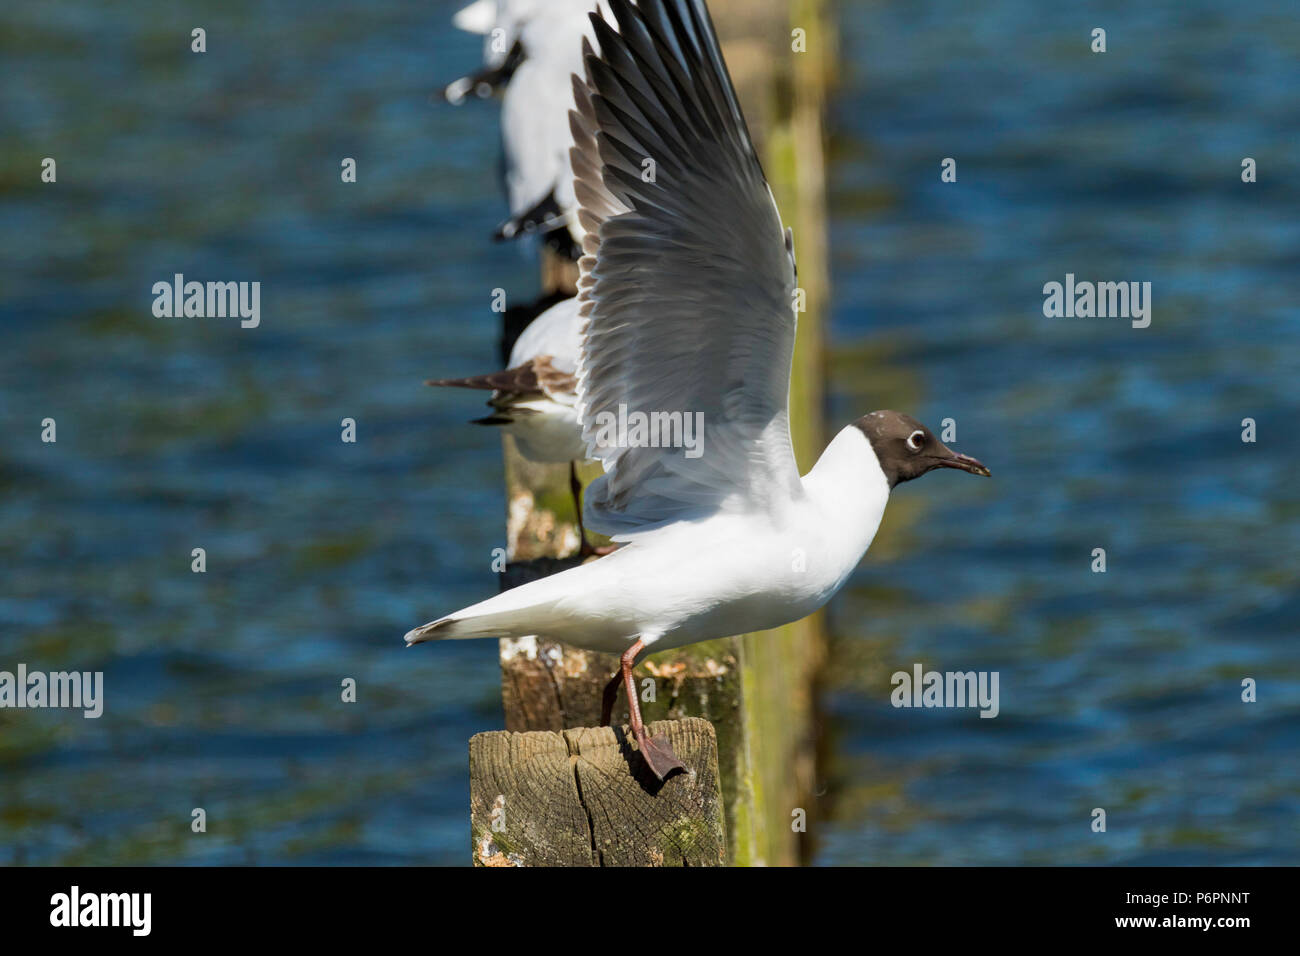 Black-headed Gull about to fly. - Stock Image